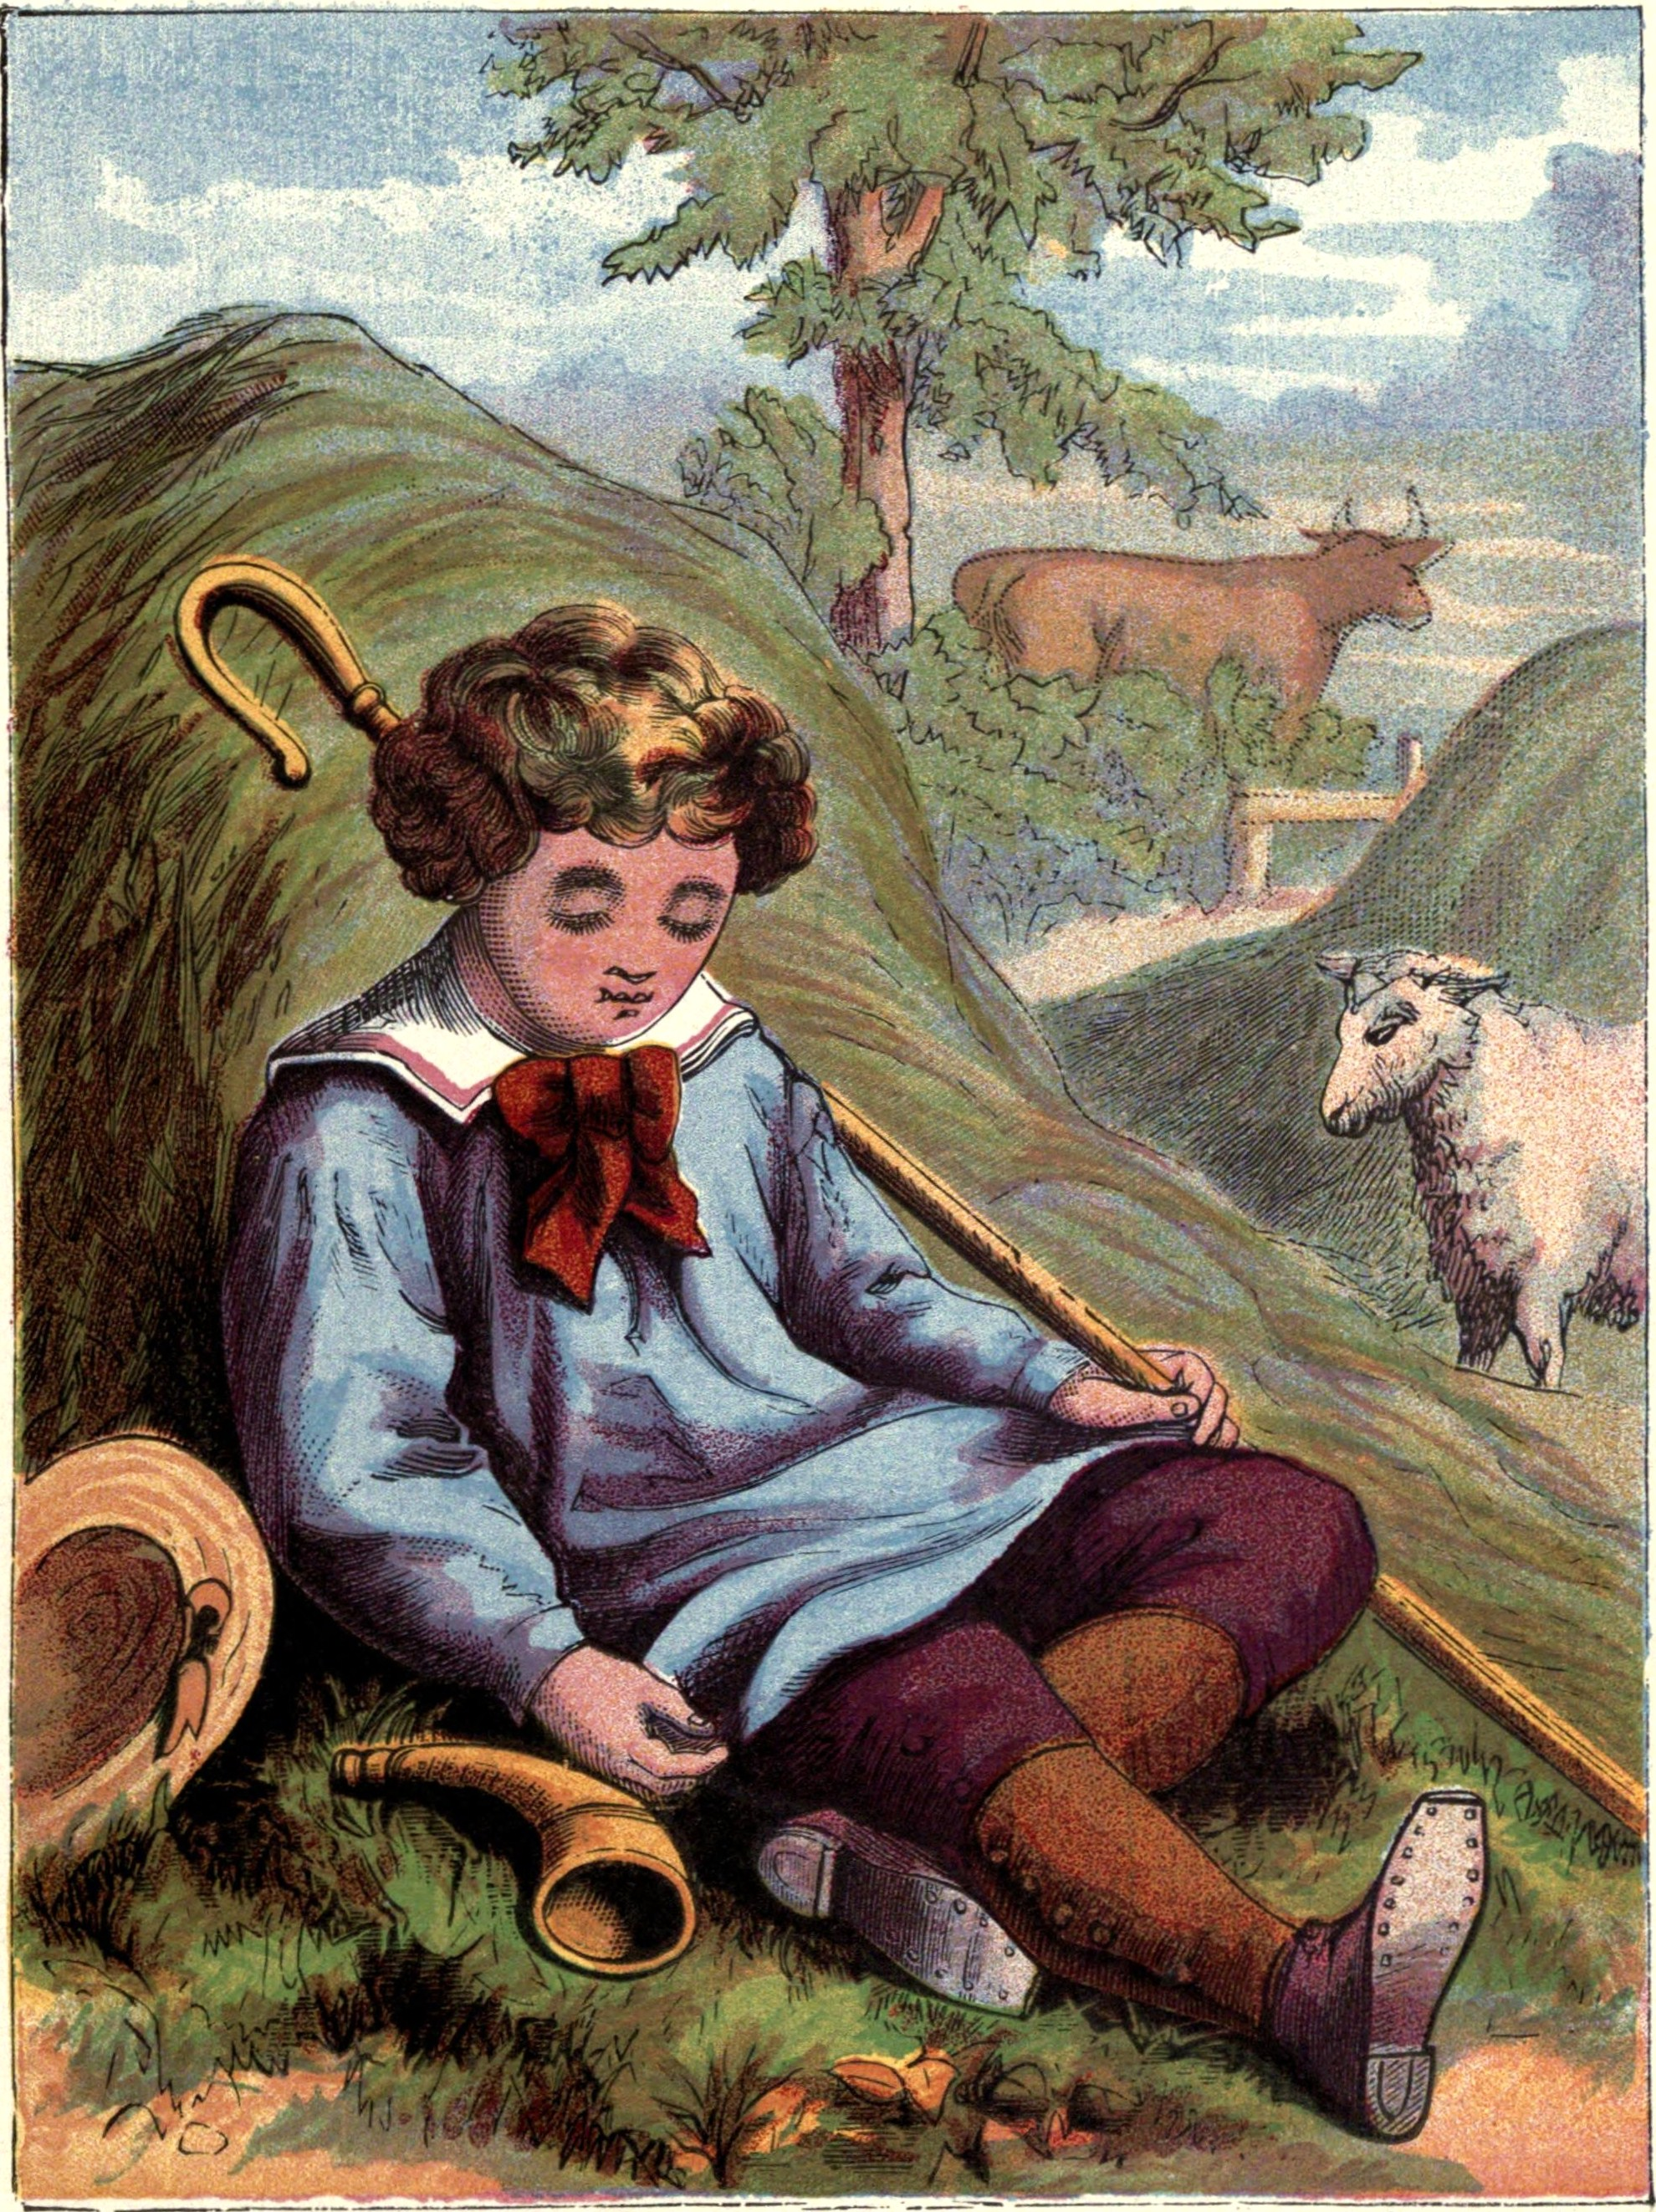 Nursery Rhymes pg 7.jpg